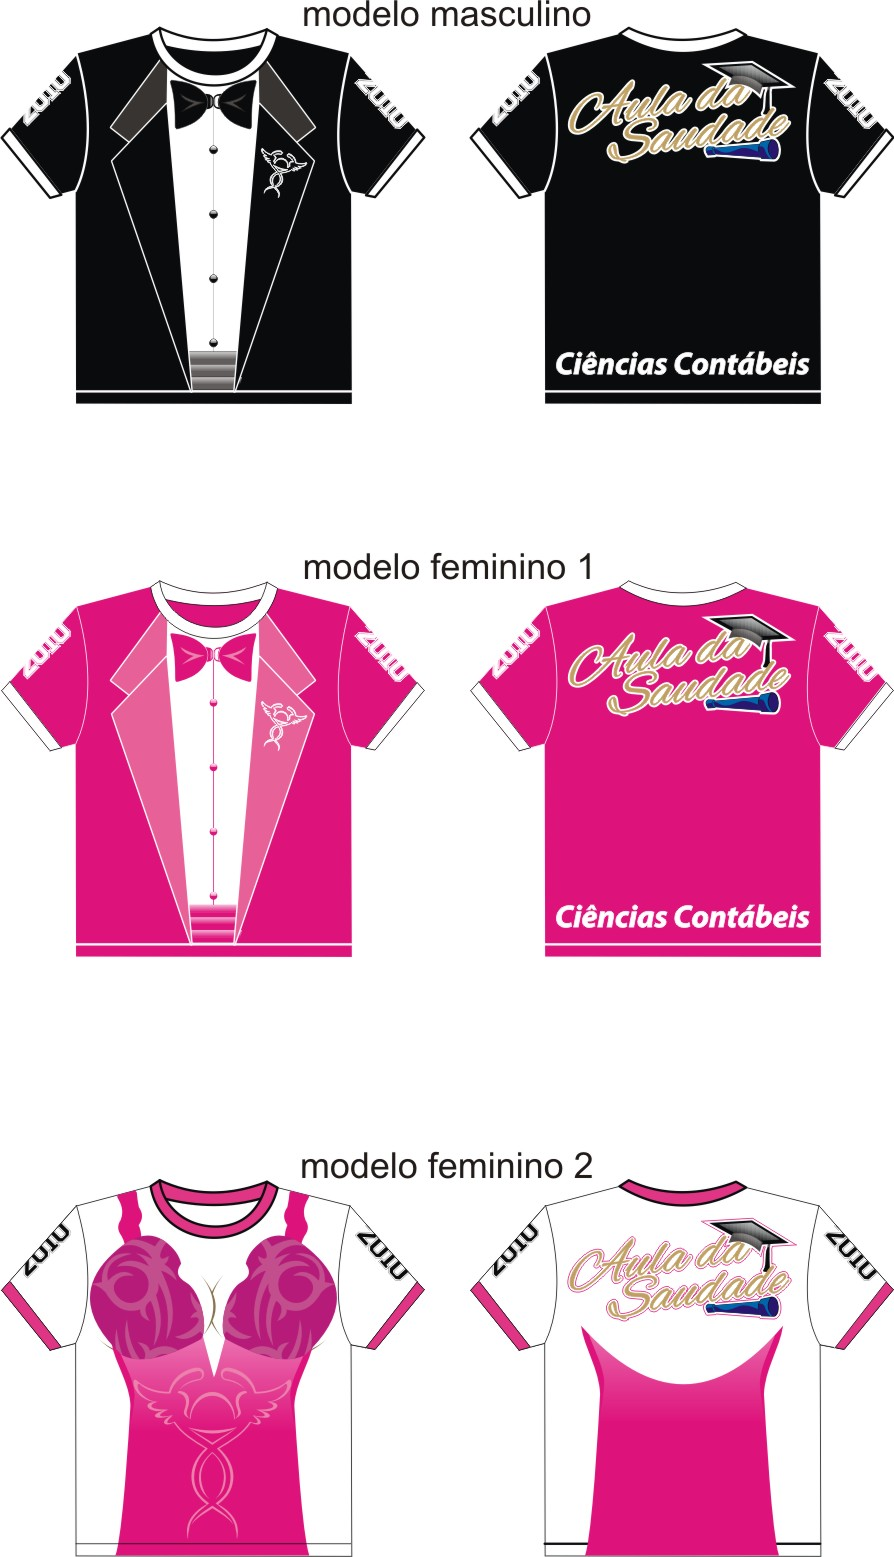 CAMISETA FORMANDO CONTAB  IS